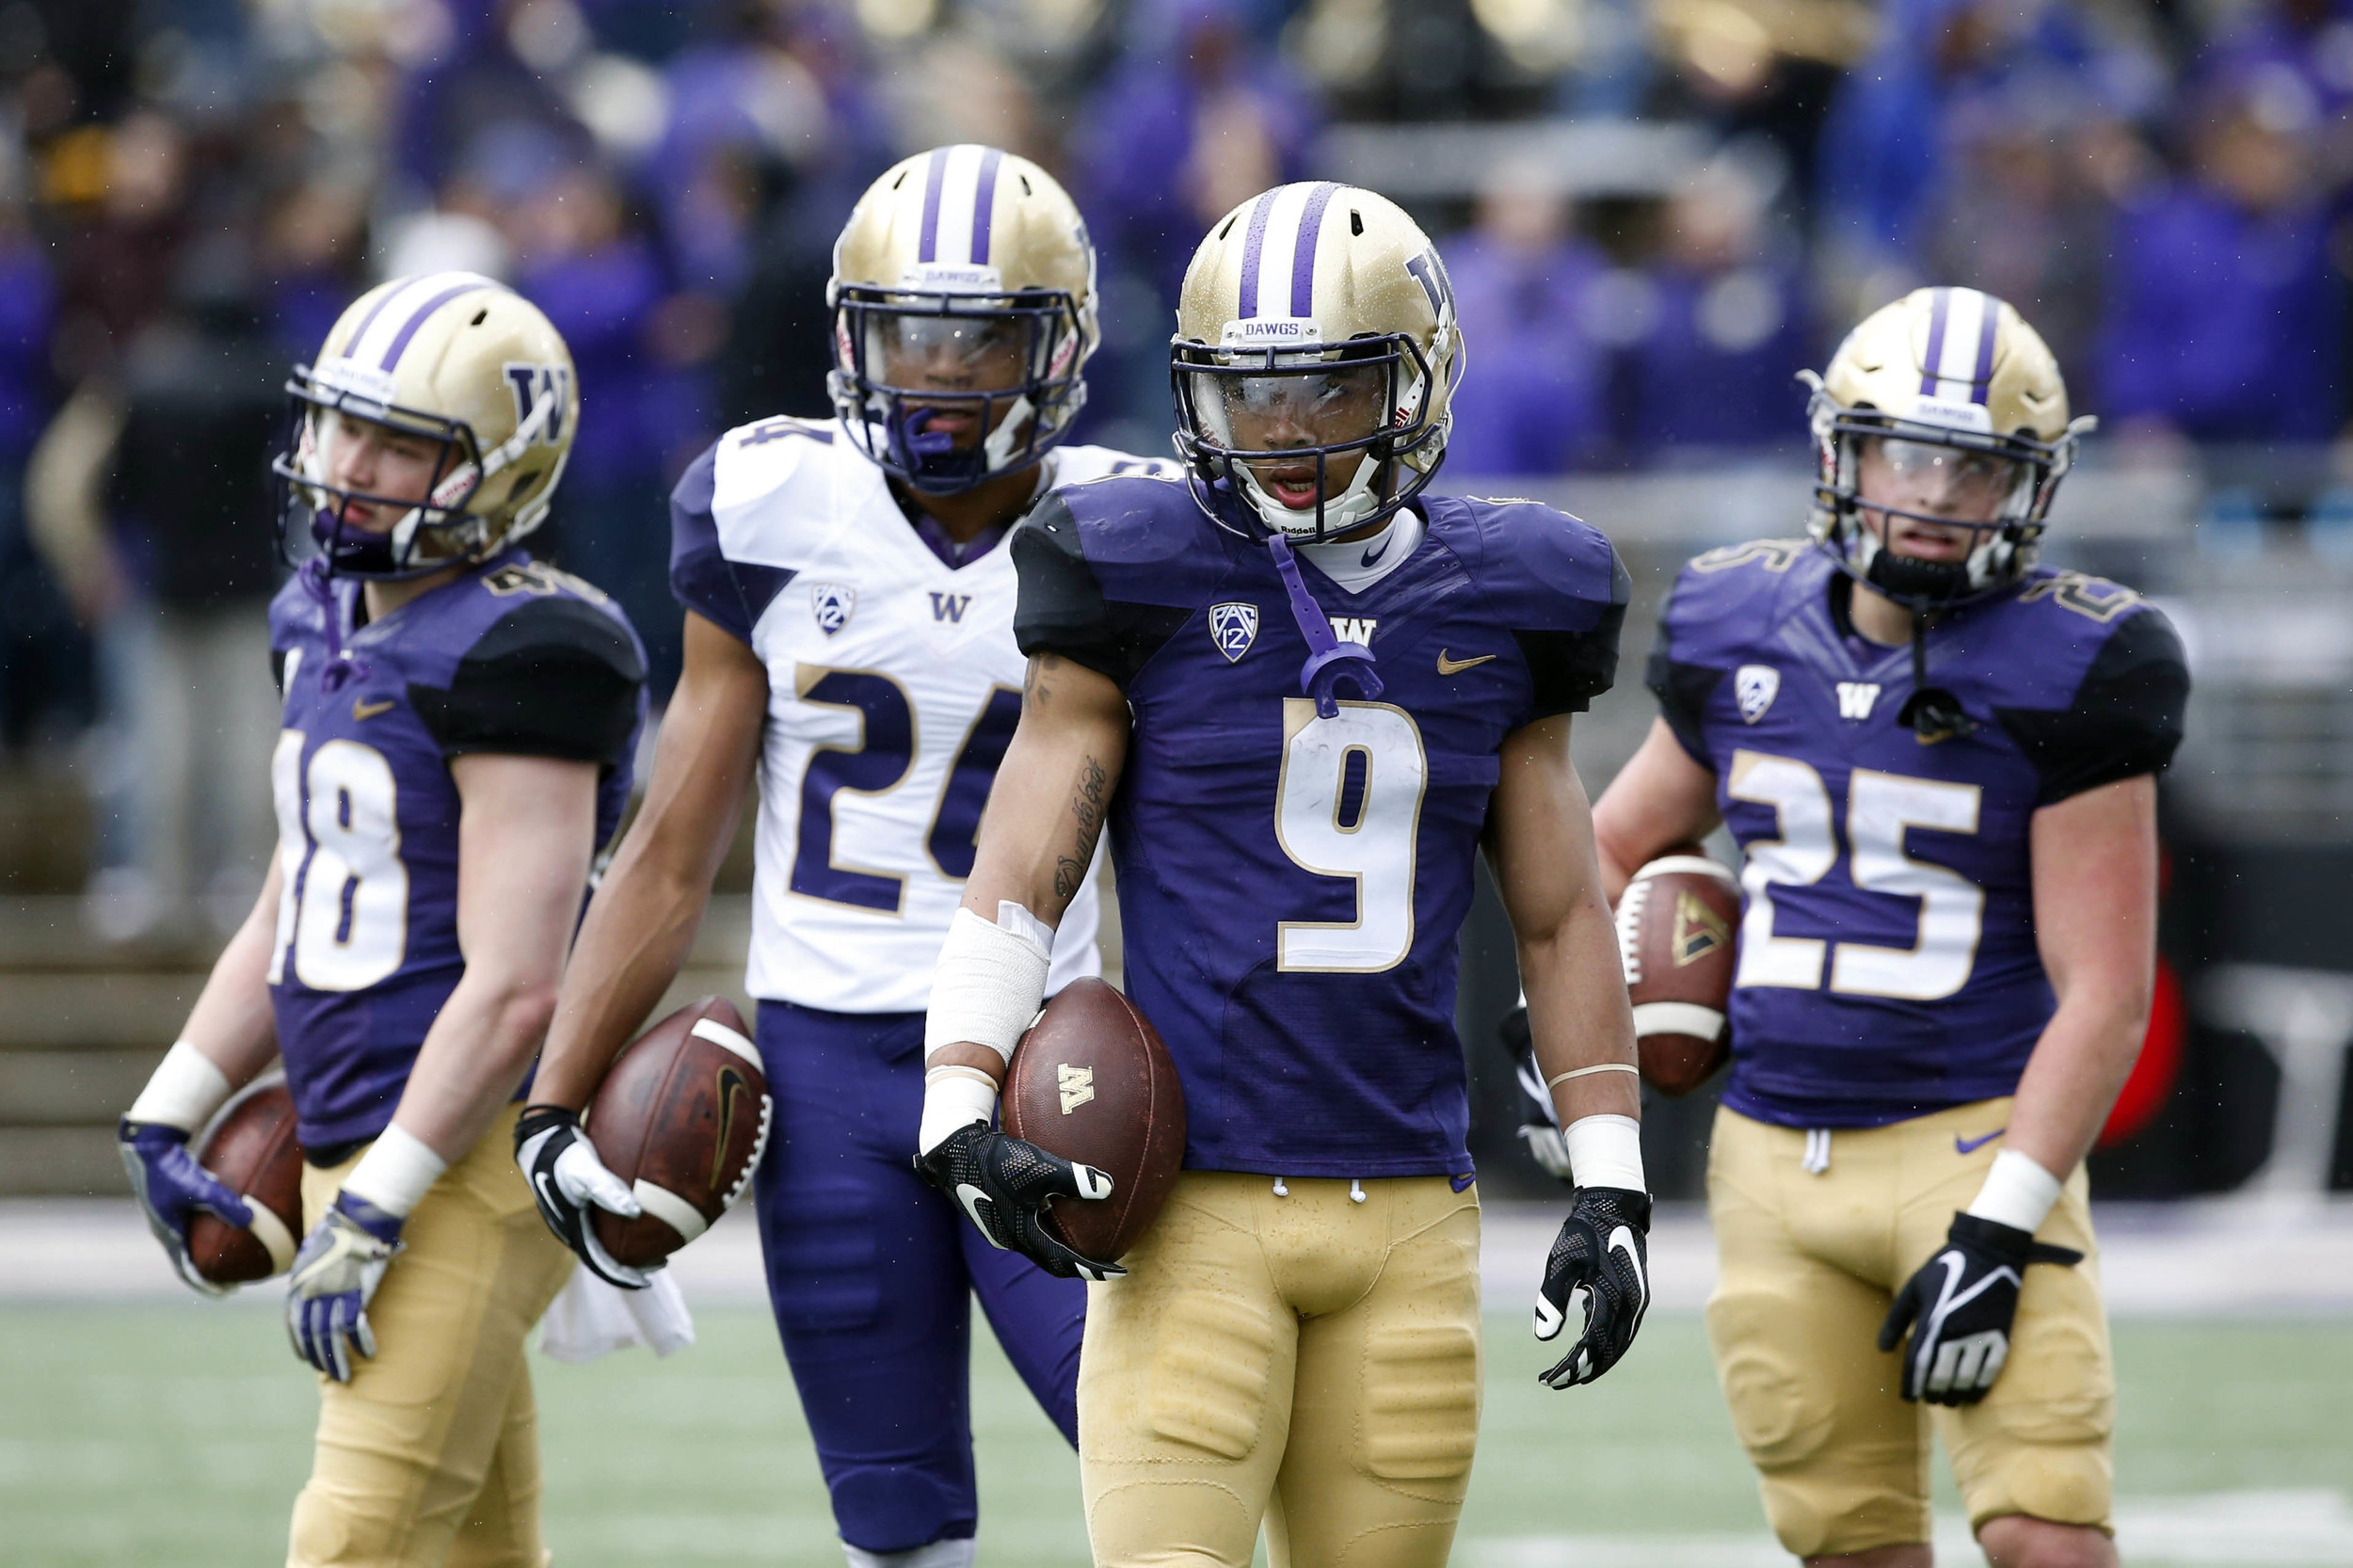 Myles Gaskins (9) has secretly been one of the top backs in the country the last two seasons. He is the x-factor for the Huskies long-term success this season. (Jennifer Buchanan/USA TODAY Sports)